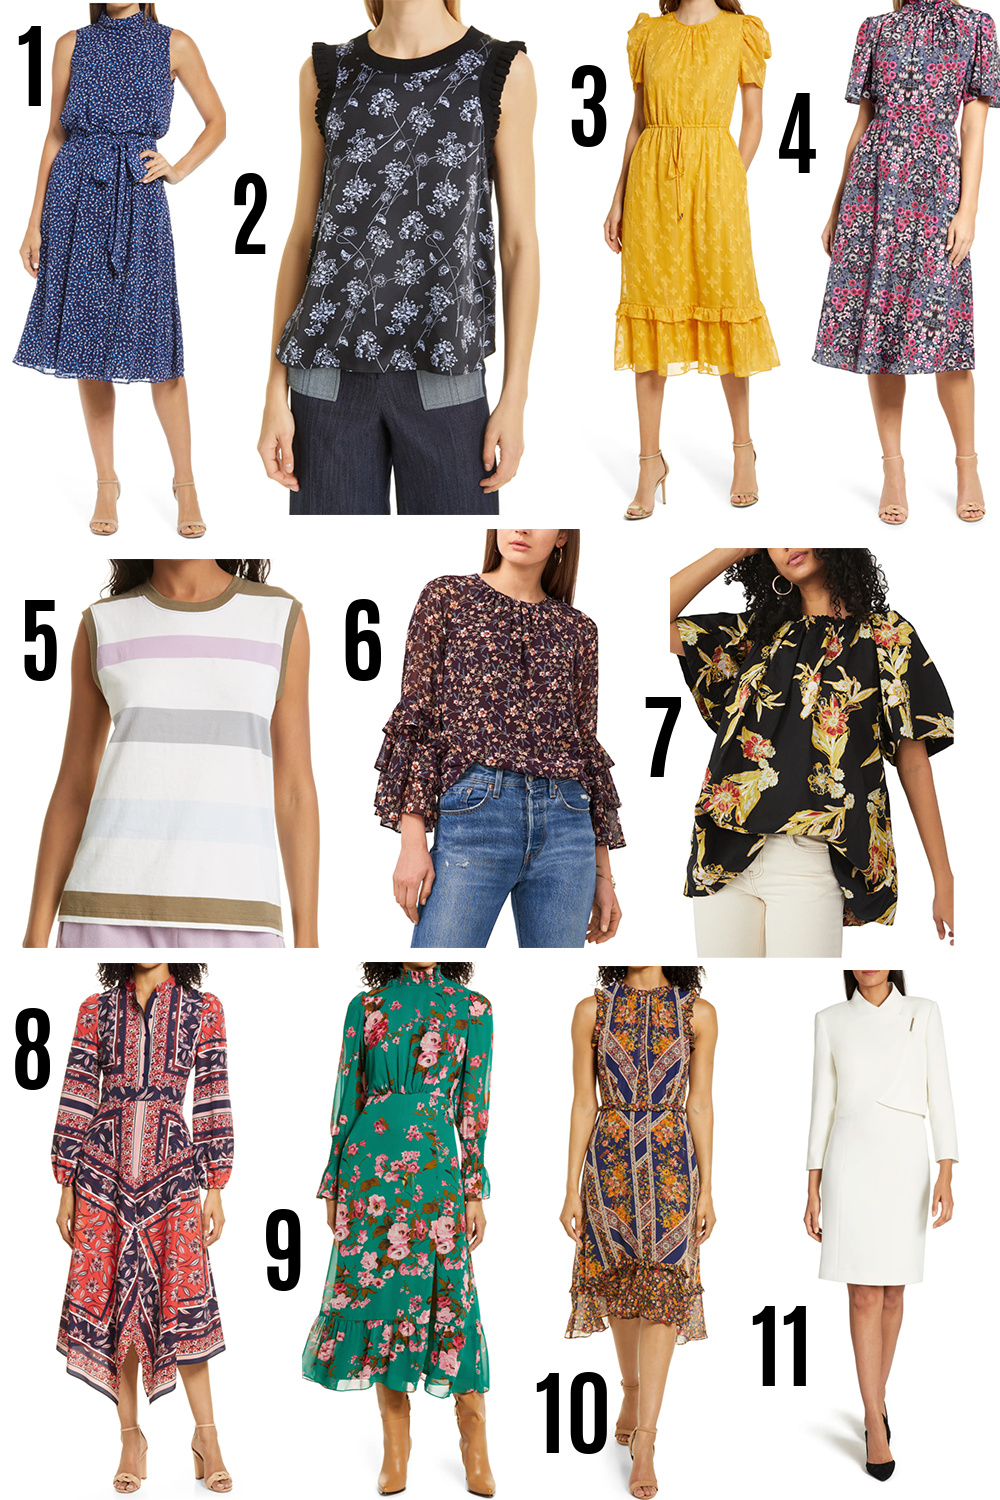 2021 Nordstrom Anniversary Sale I Dresses and Blouses